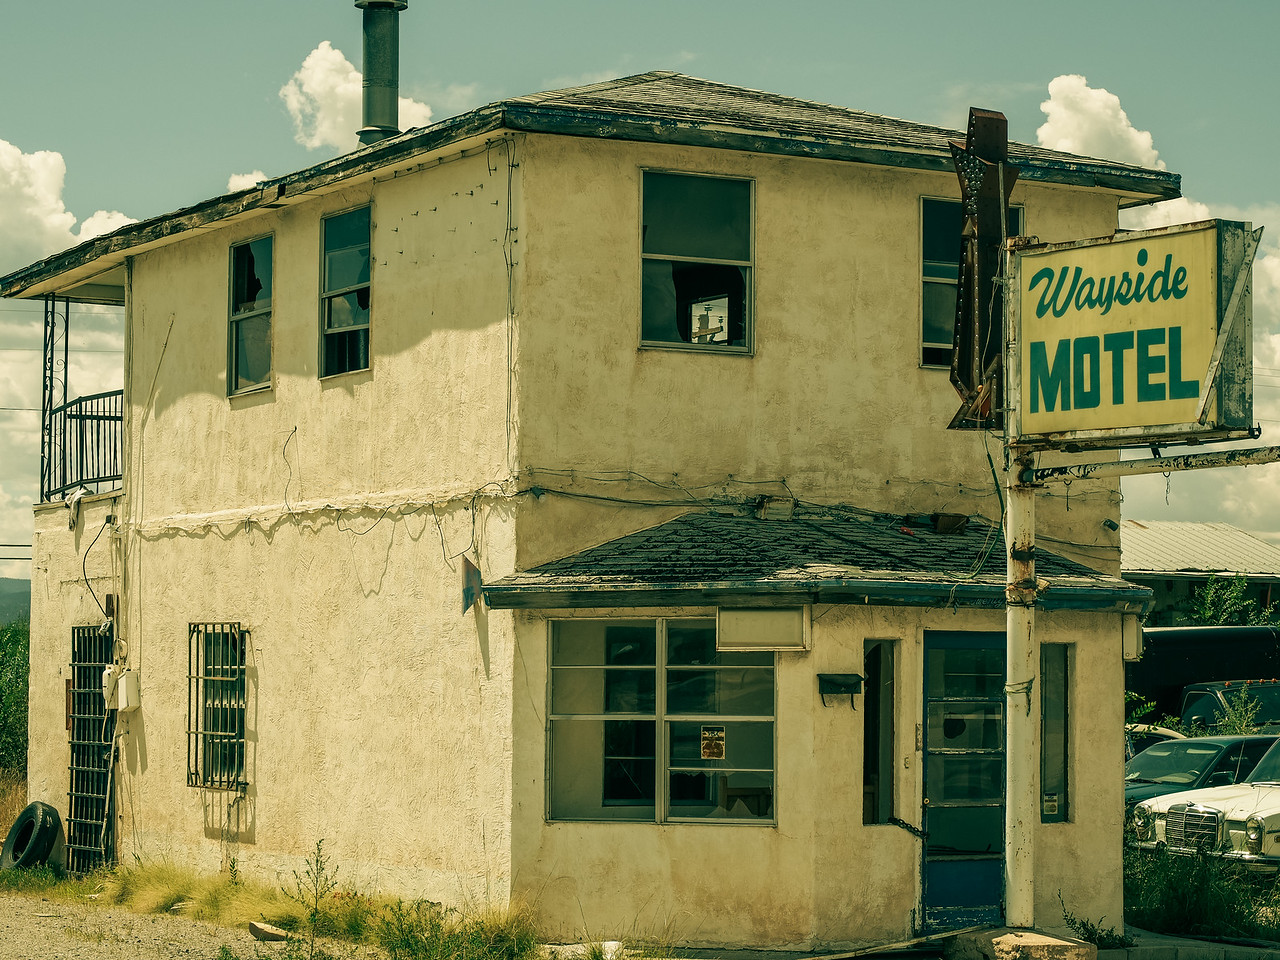 Abandoned Time Period Hotel in New Mexico